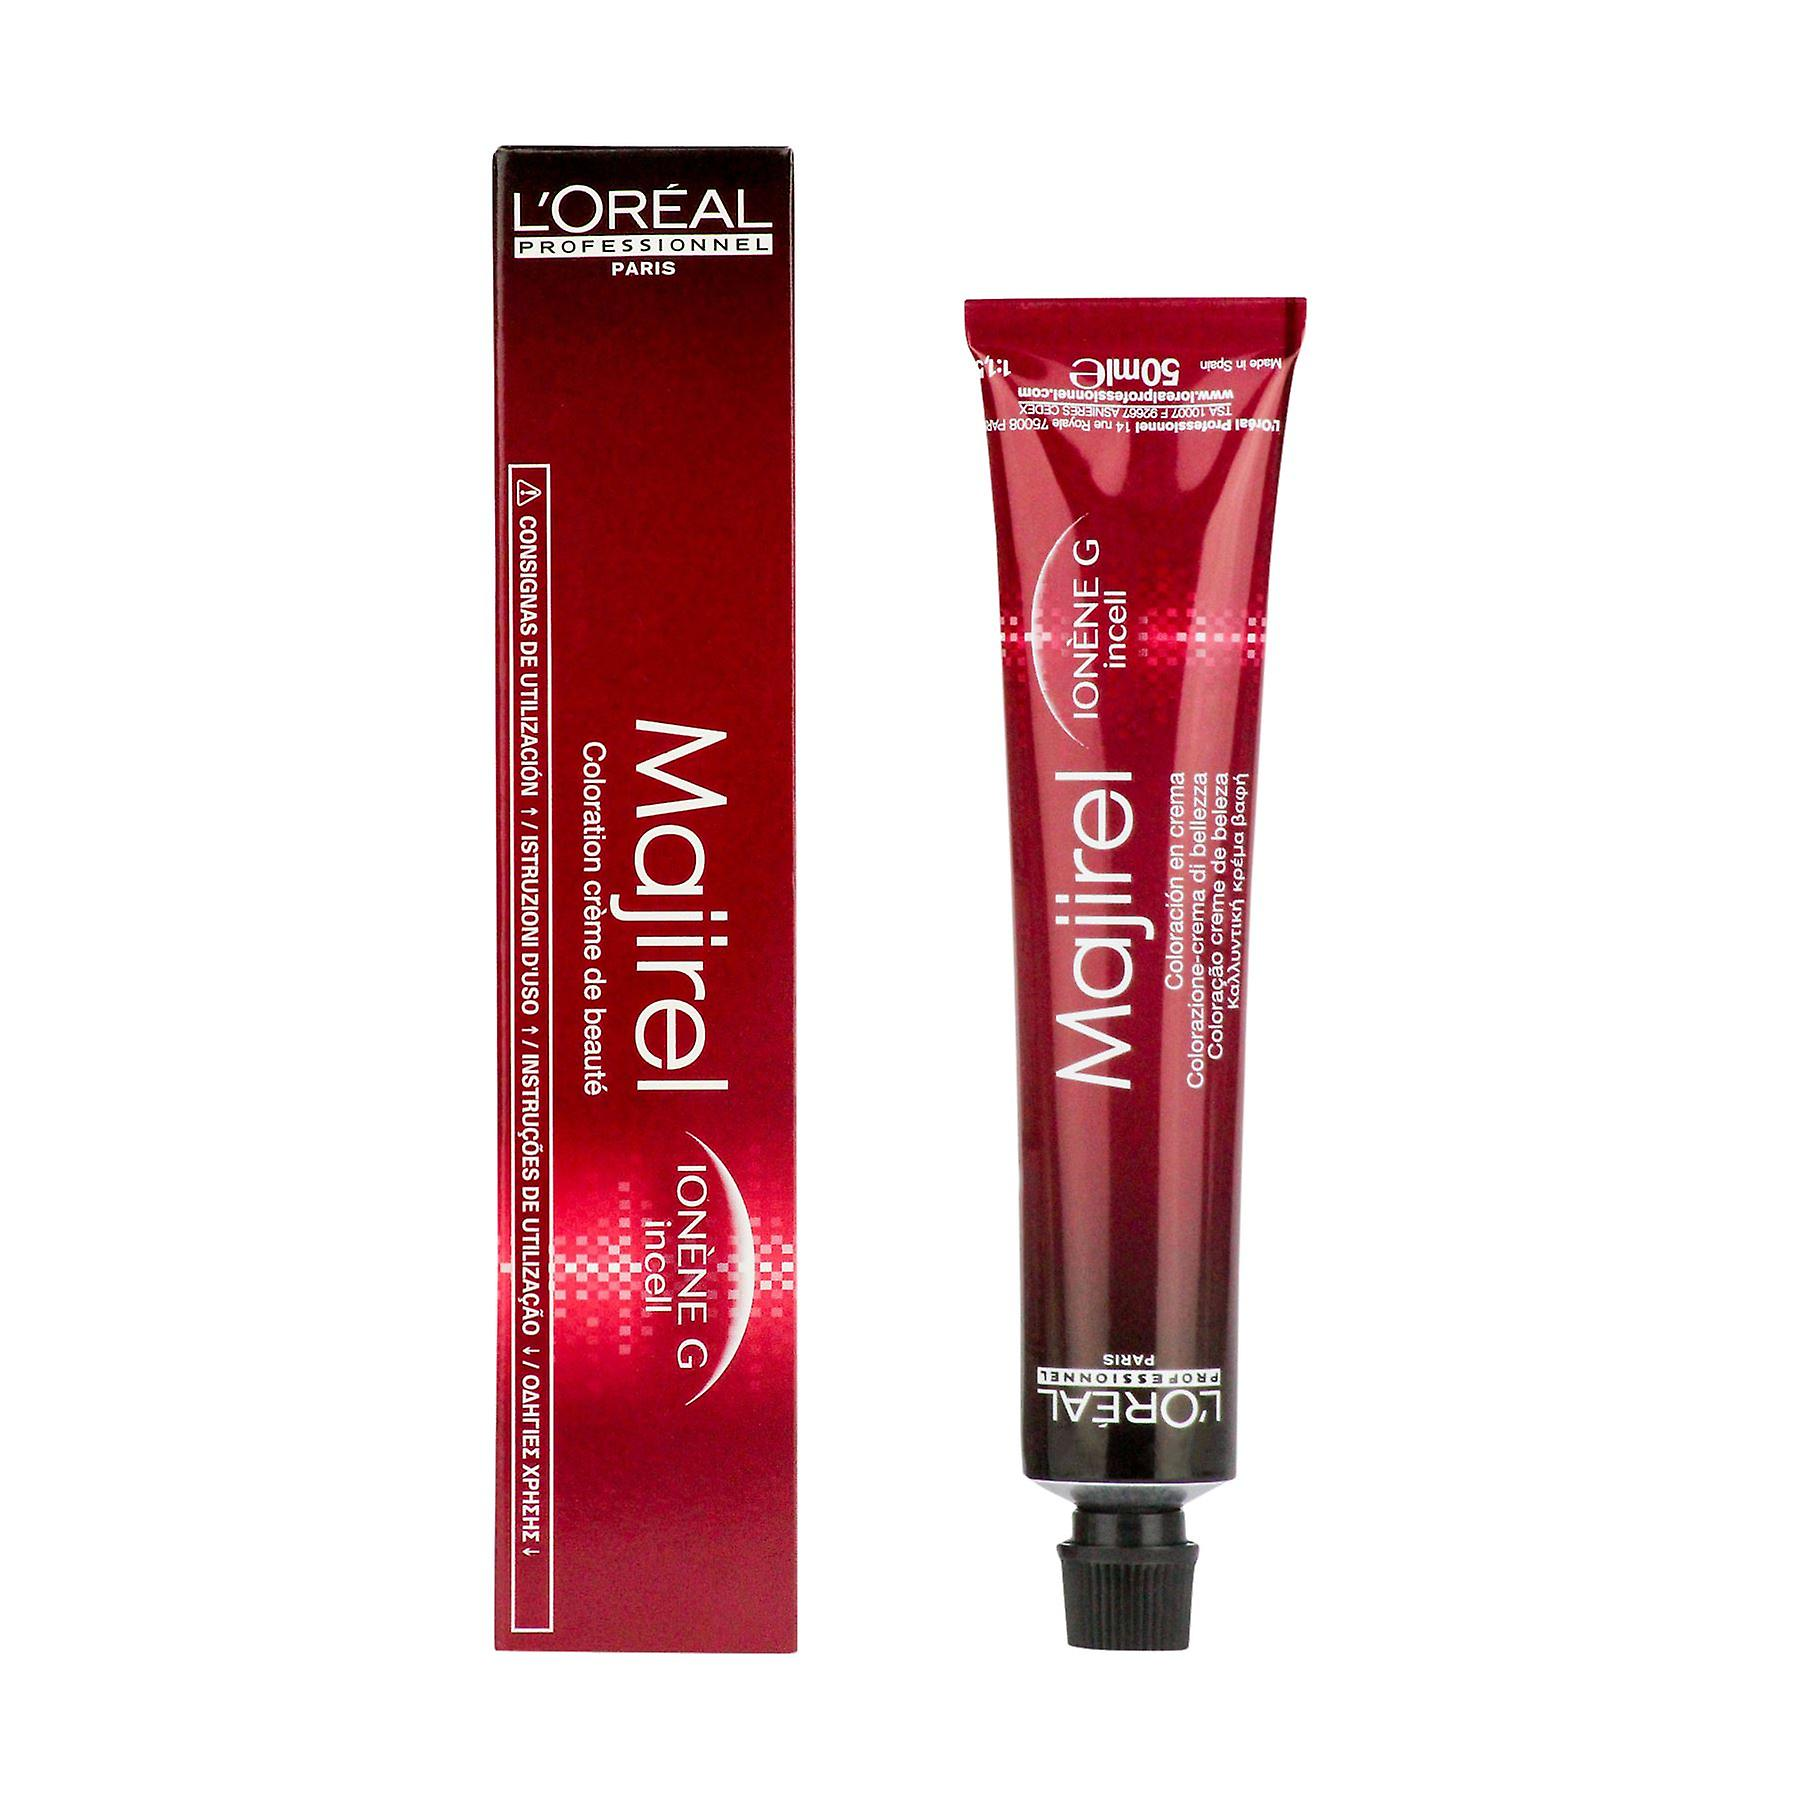 L'Oreal Professionnel Majirel 10 Lightest Blonde 50ml